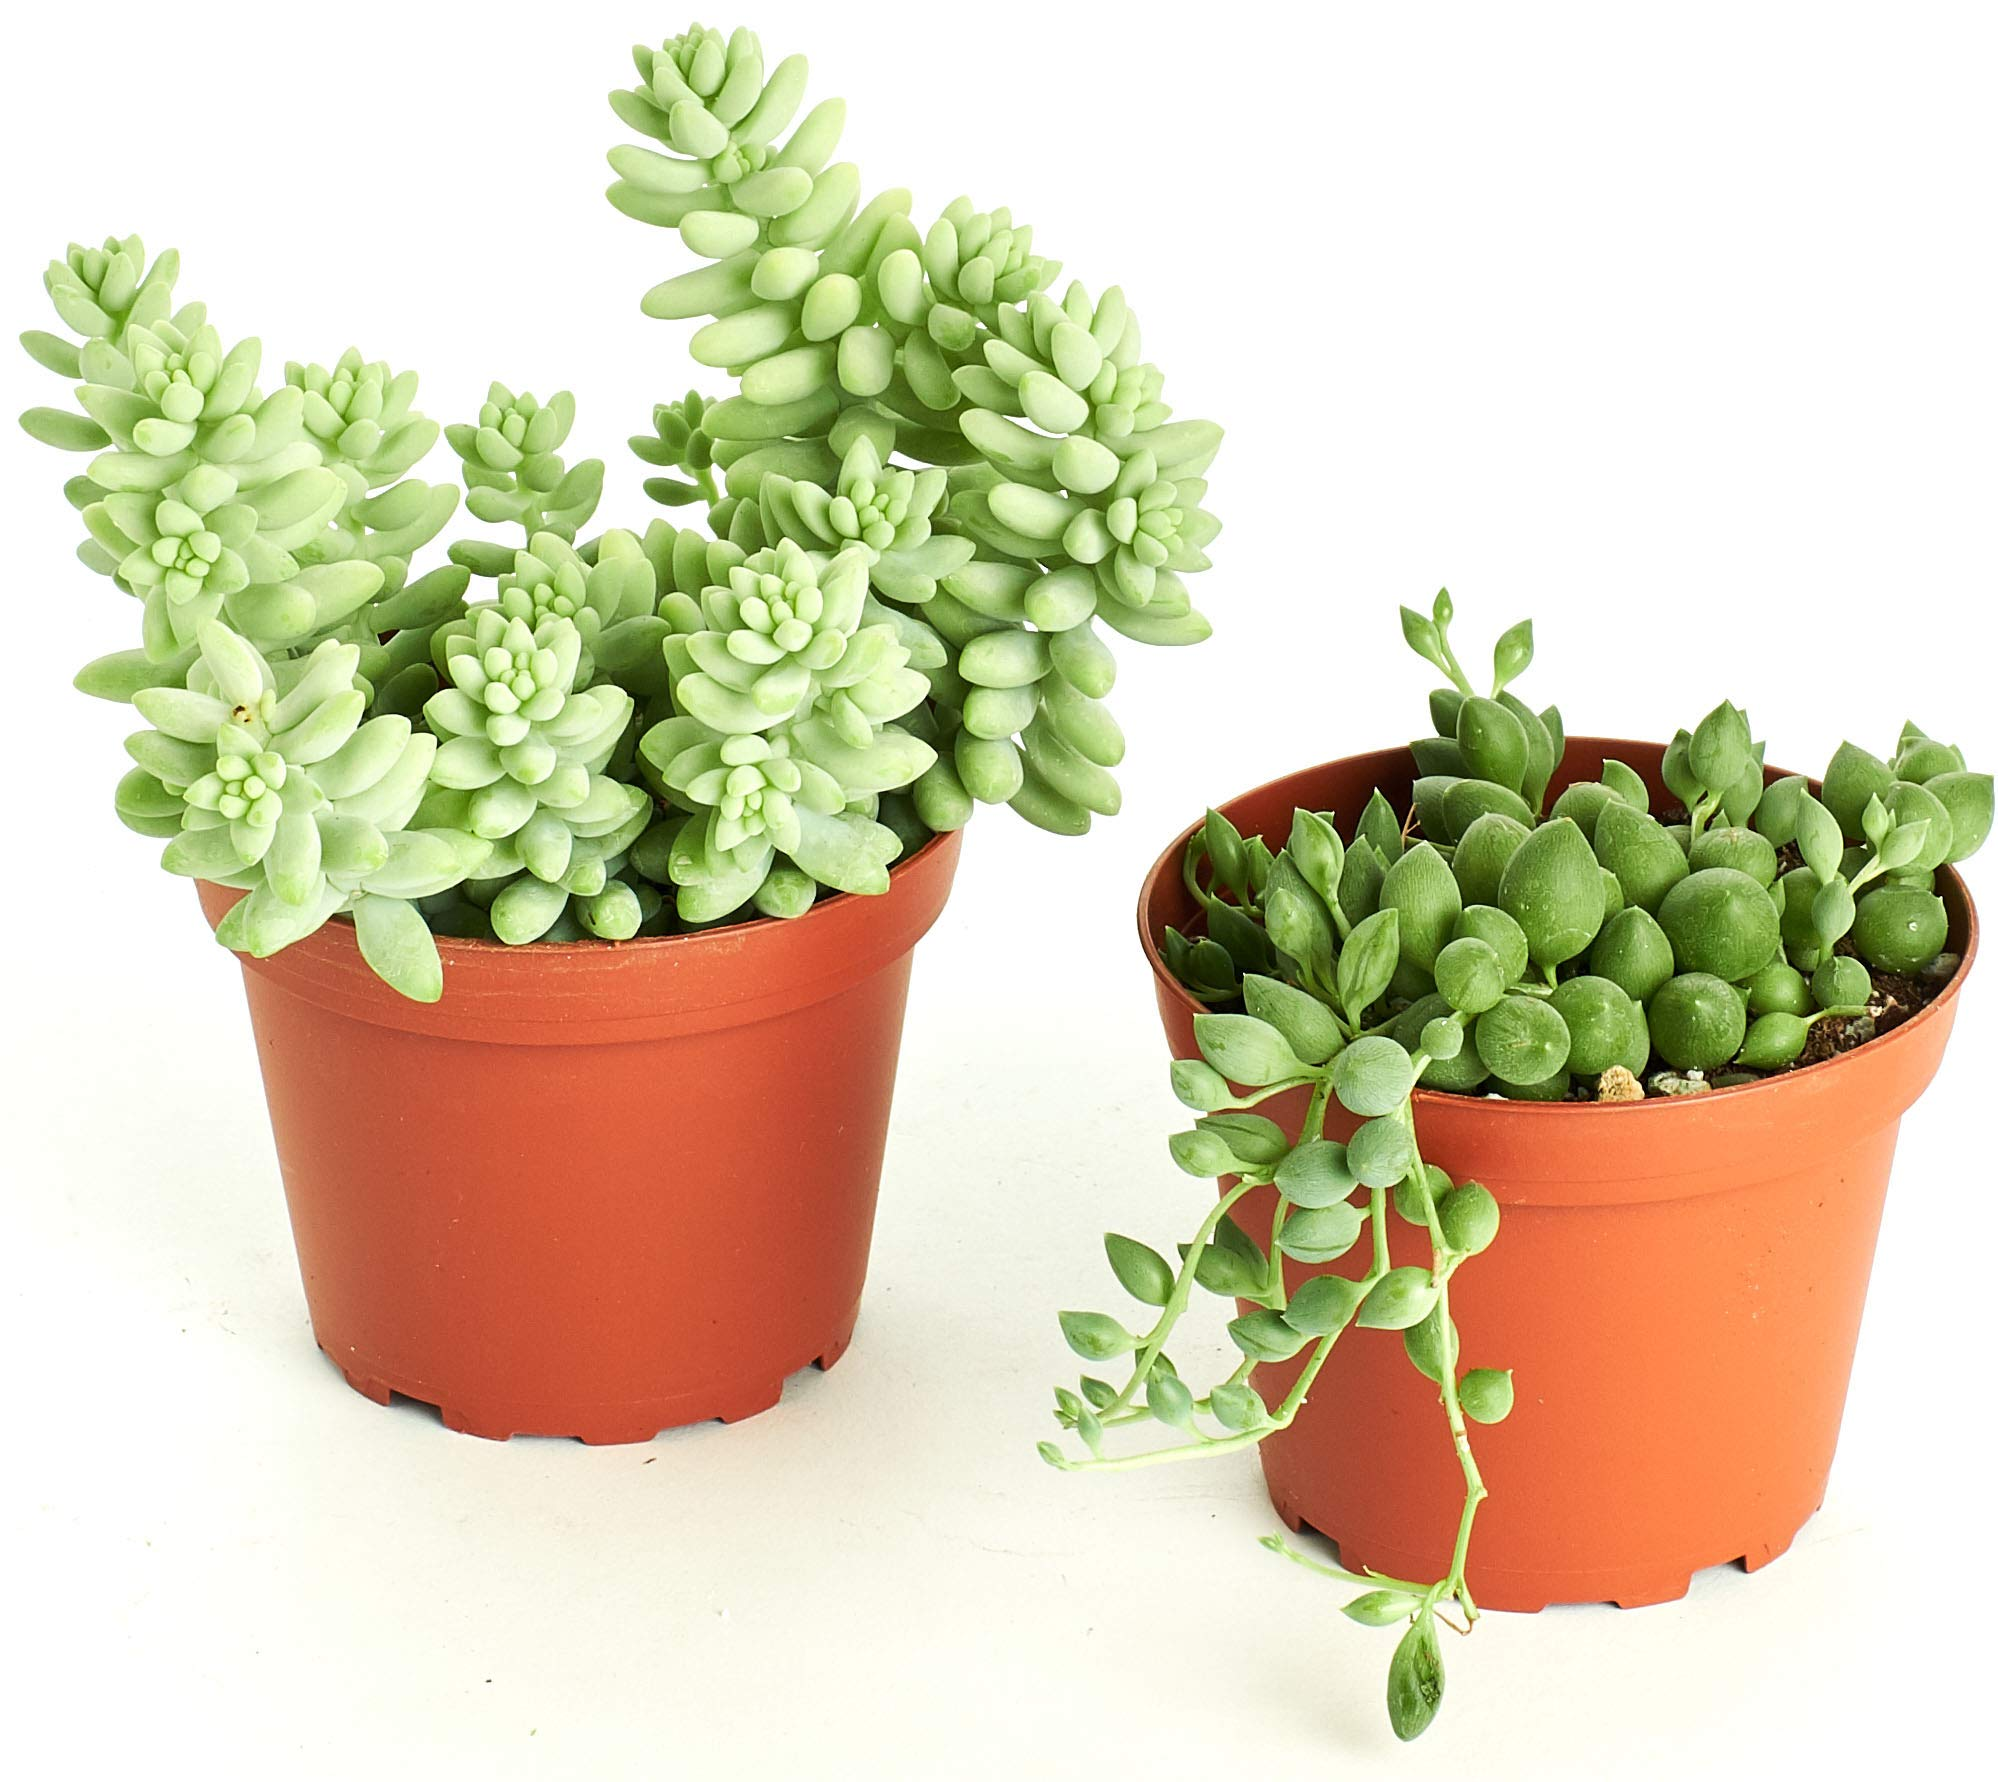 Shop Succulents | Hanging Collection of Live Succulent Plants, Hand Selected String of Pearls & Burrito Sedum Variety| Collection of 2